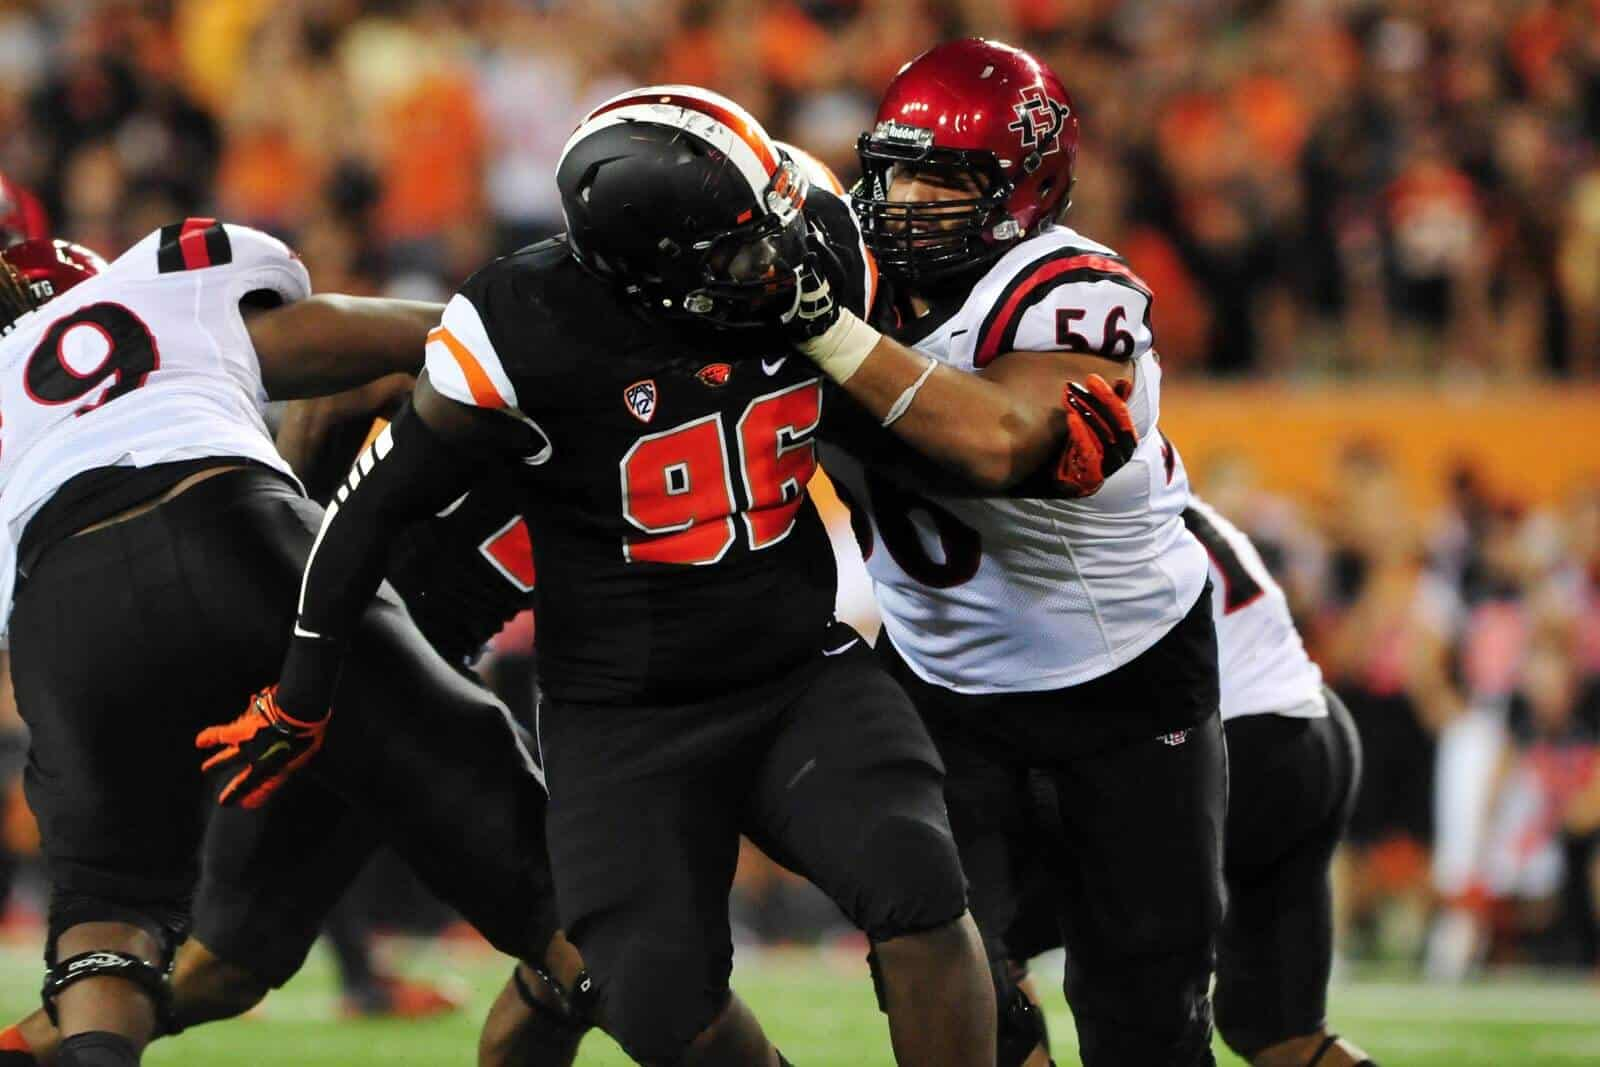 Oregon State-San Diego State